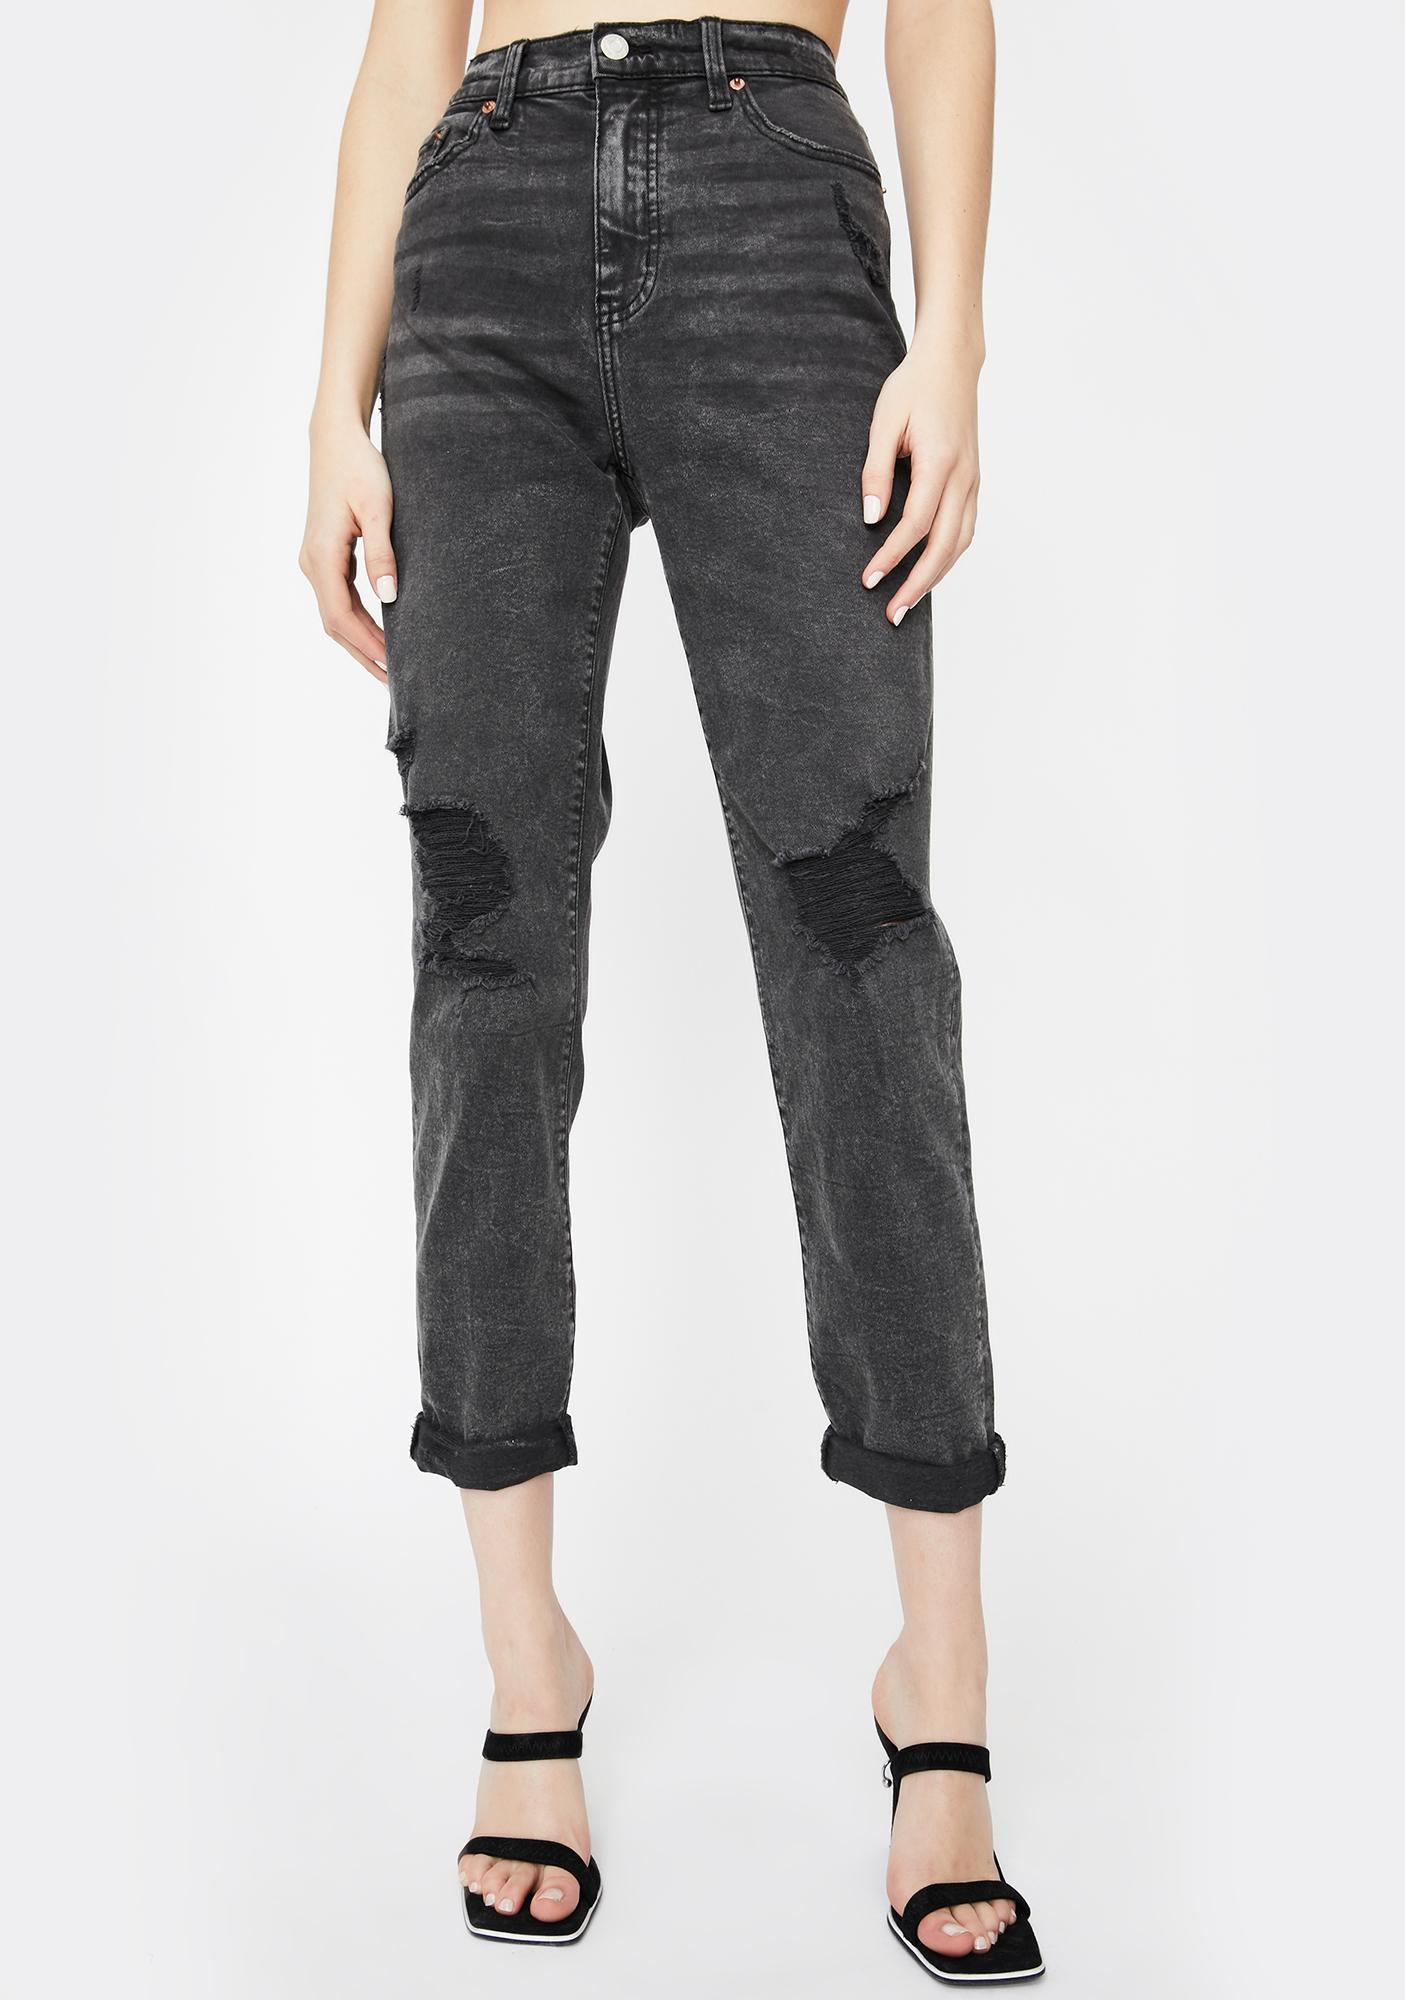 Daze Lover Boy Distressed Jeans